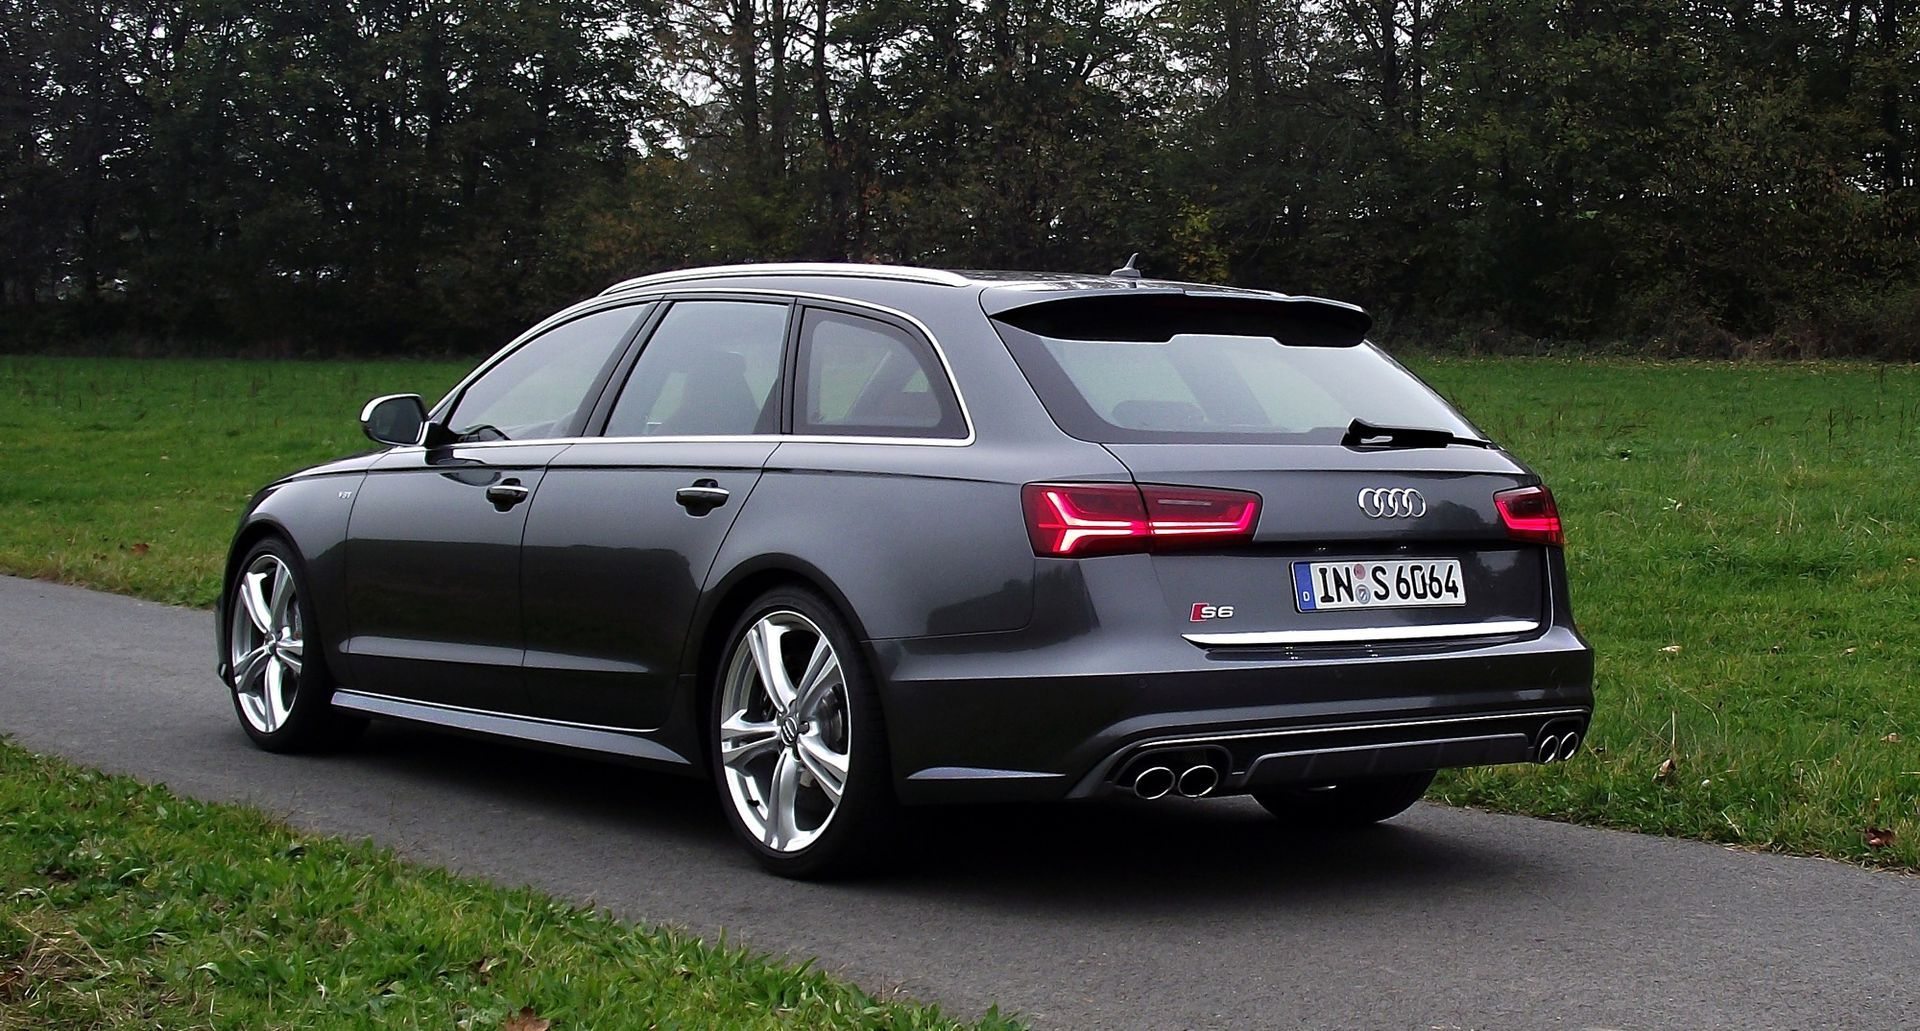 2014 audi s6 avant c7 typ 4g v8 4 0 tfsi quattro facelift. Black Bedroom Furniture Sets. Home Design Ideas